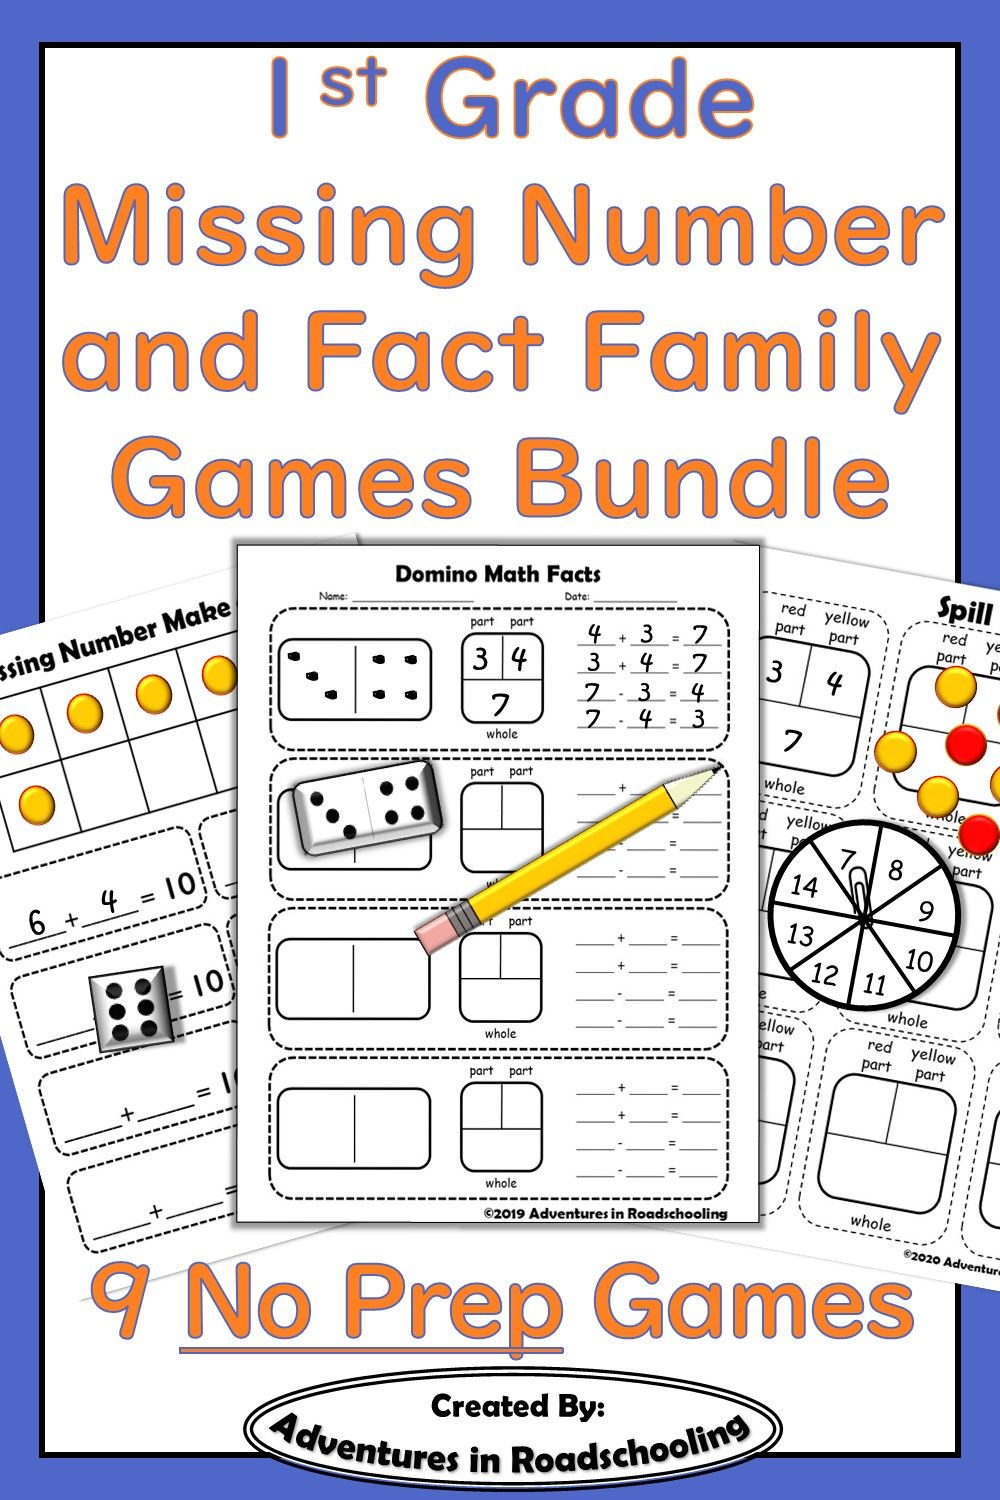 First Grade Missing Number Problem And Fact Families Games Bundle Fact Family Games Fact Families Math Fact Practice Missing number problems addition and